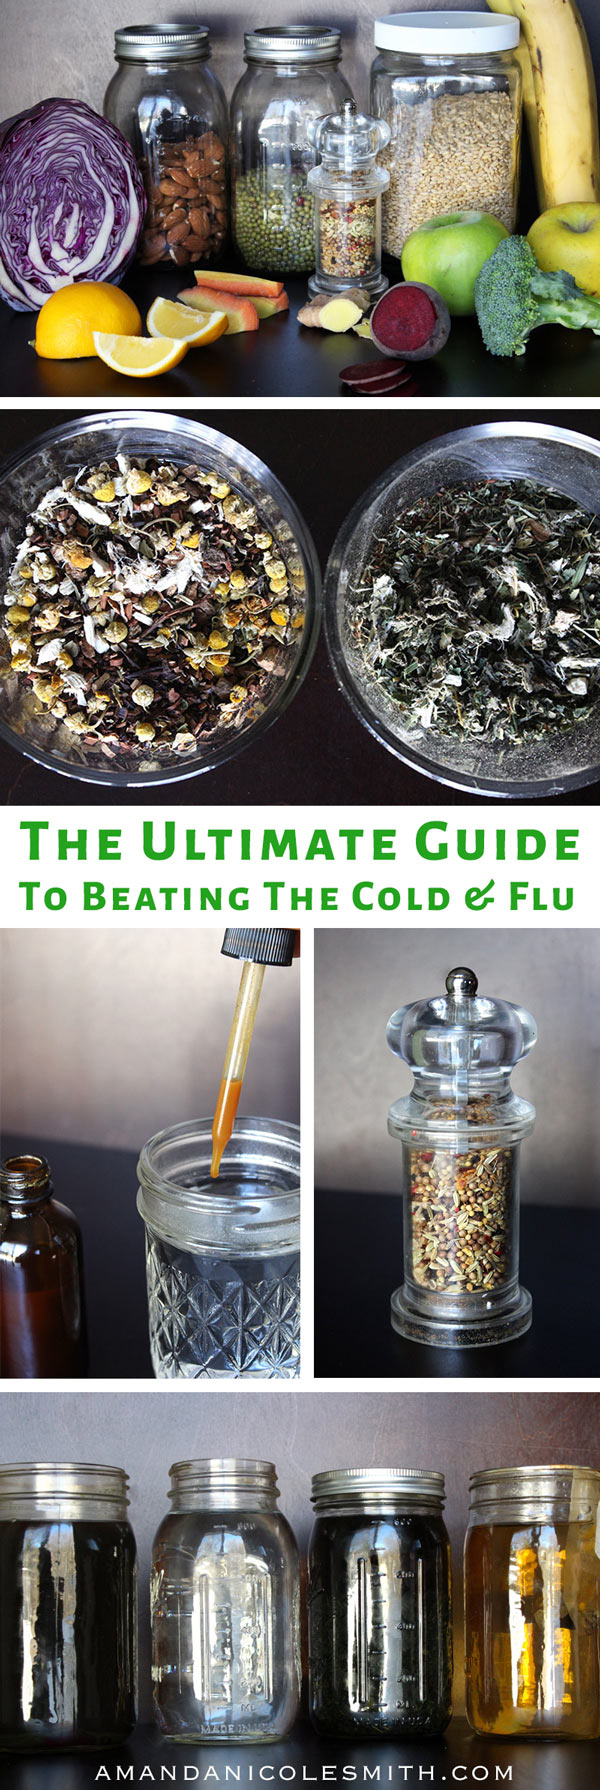 The Ultimate Guide To Beating The Cold & Flu